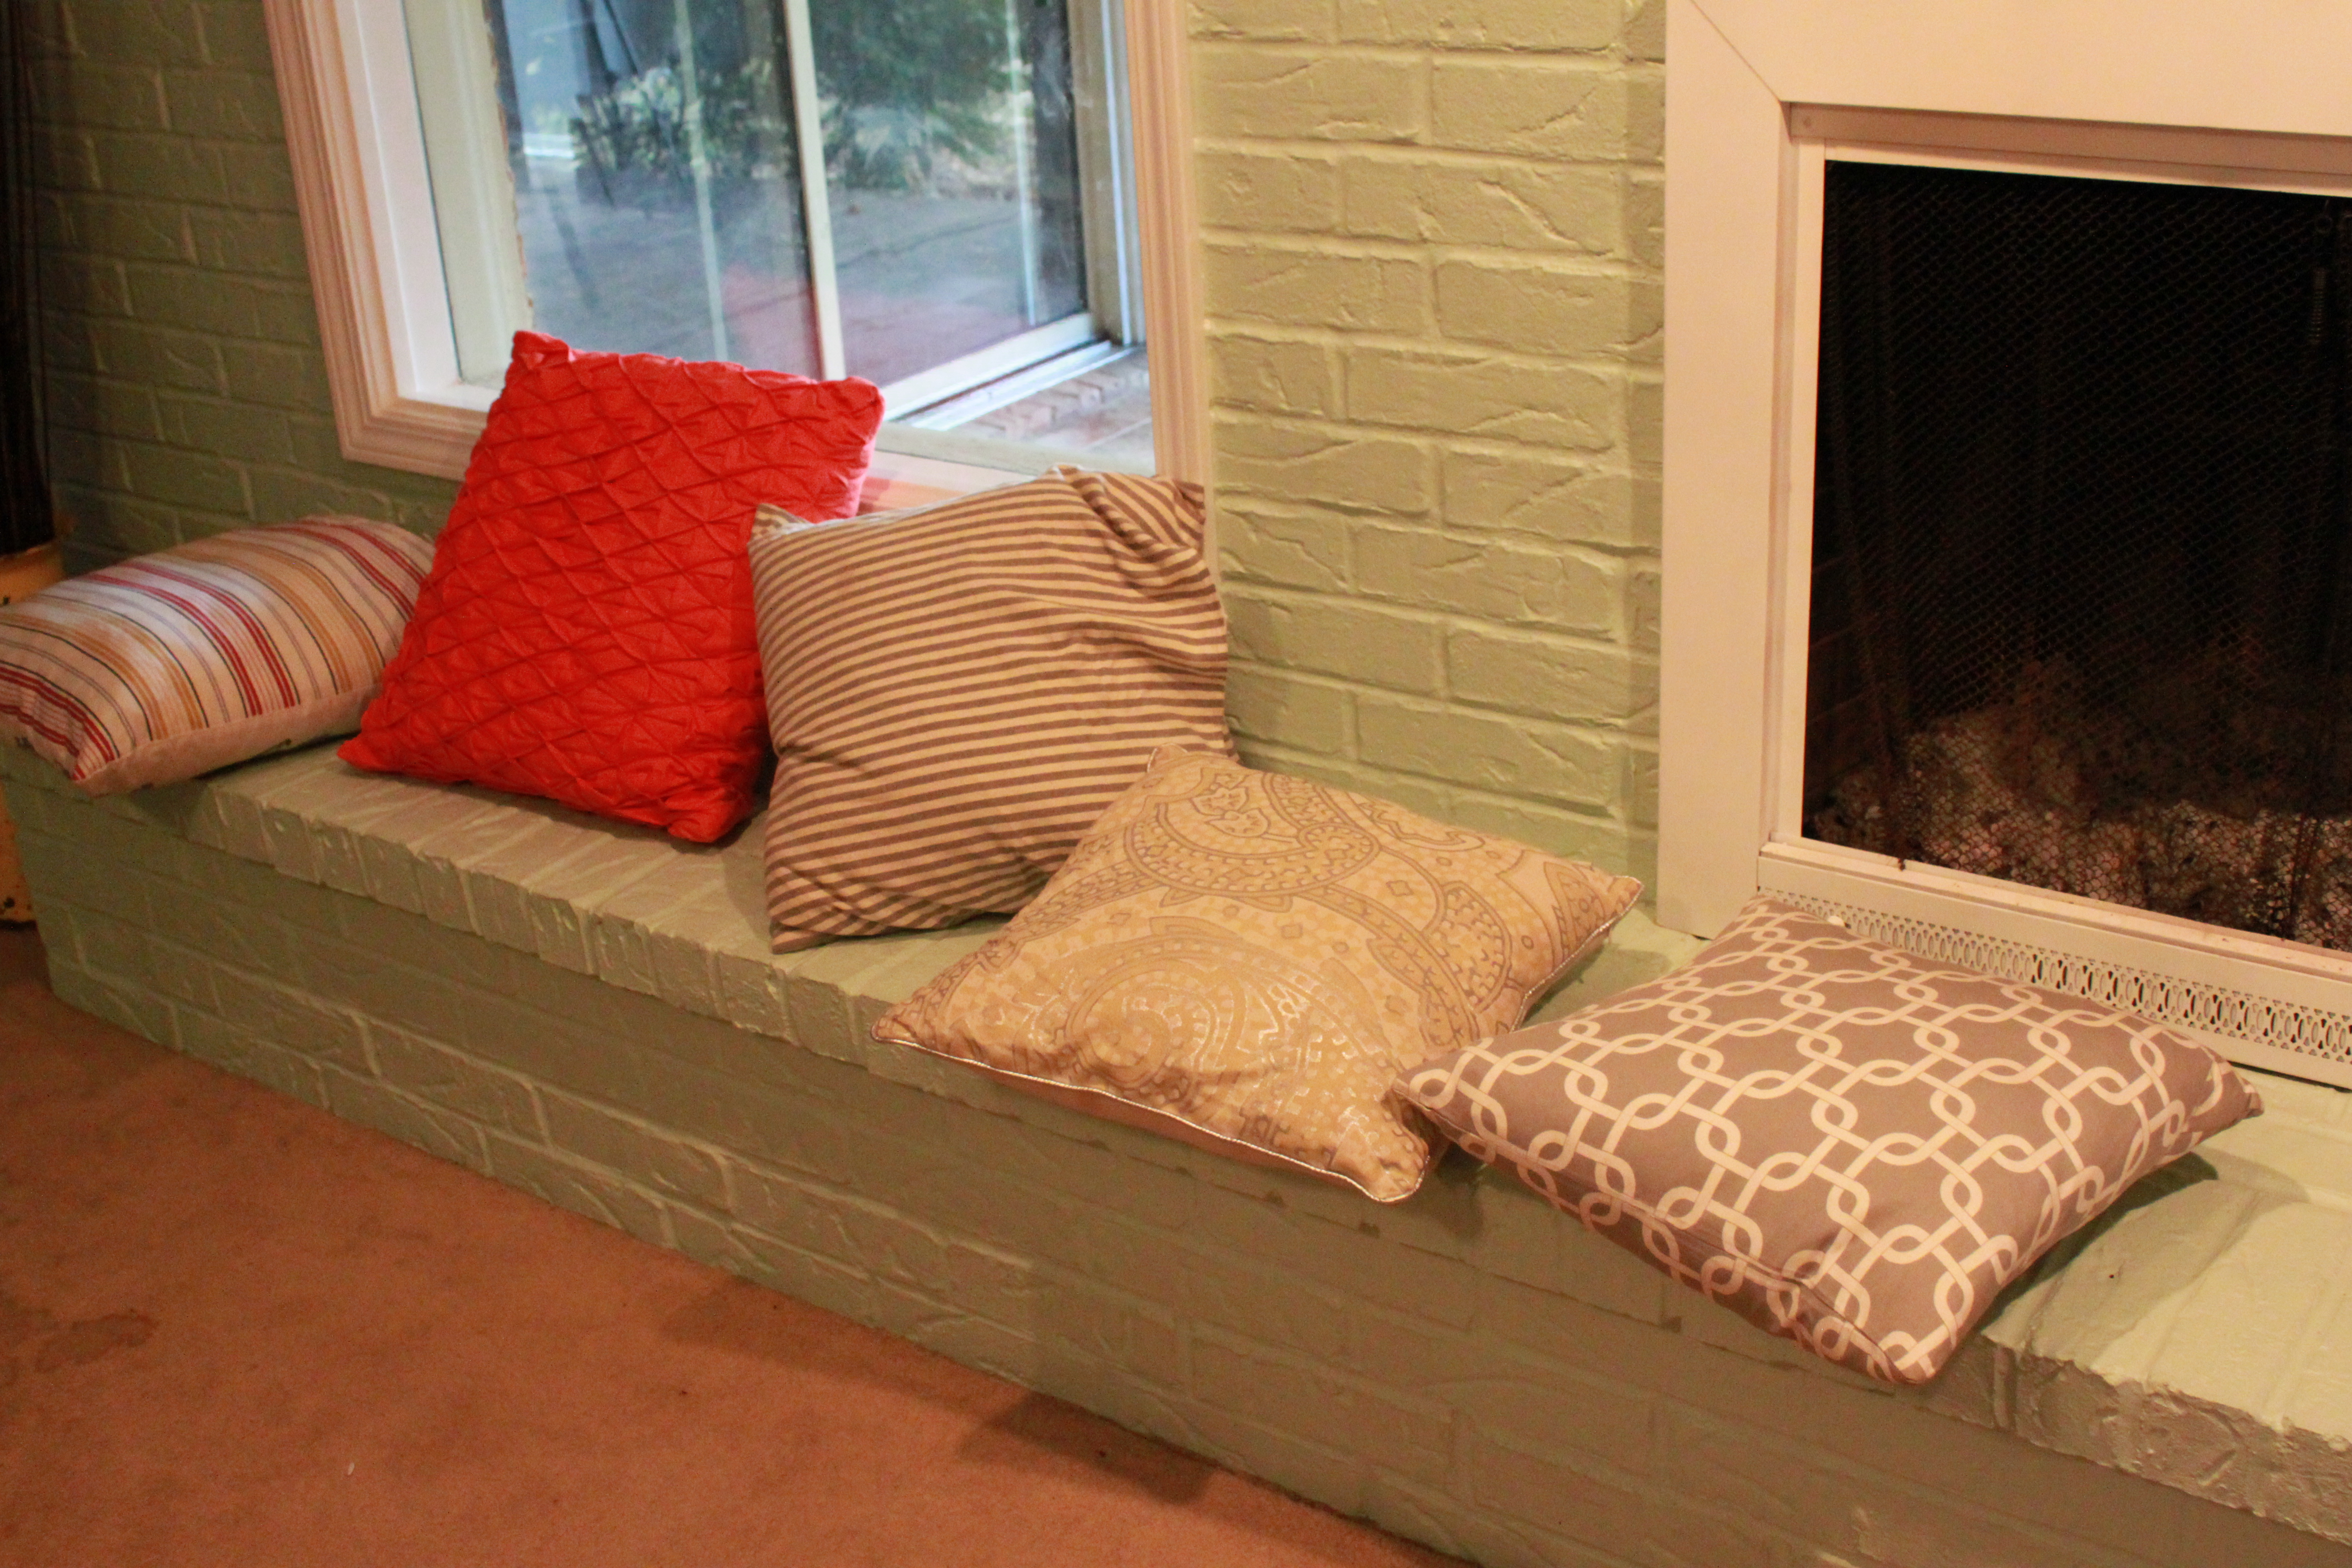 Cleaning Up the Fireplace: How to Wash Throw Pillows All Things New Interiors